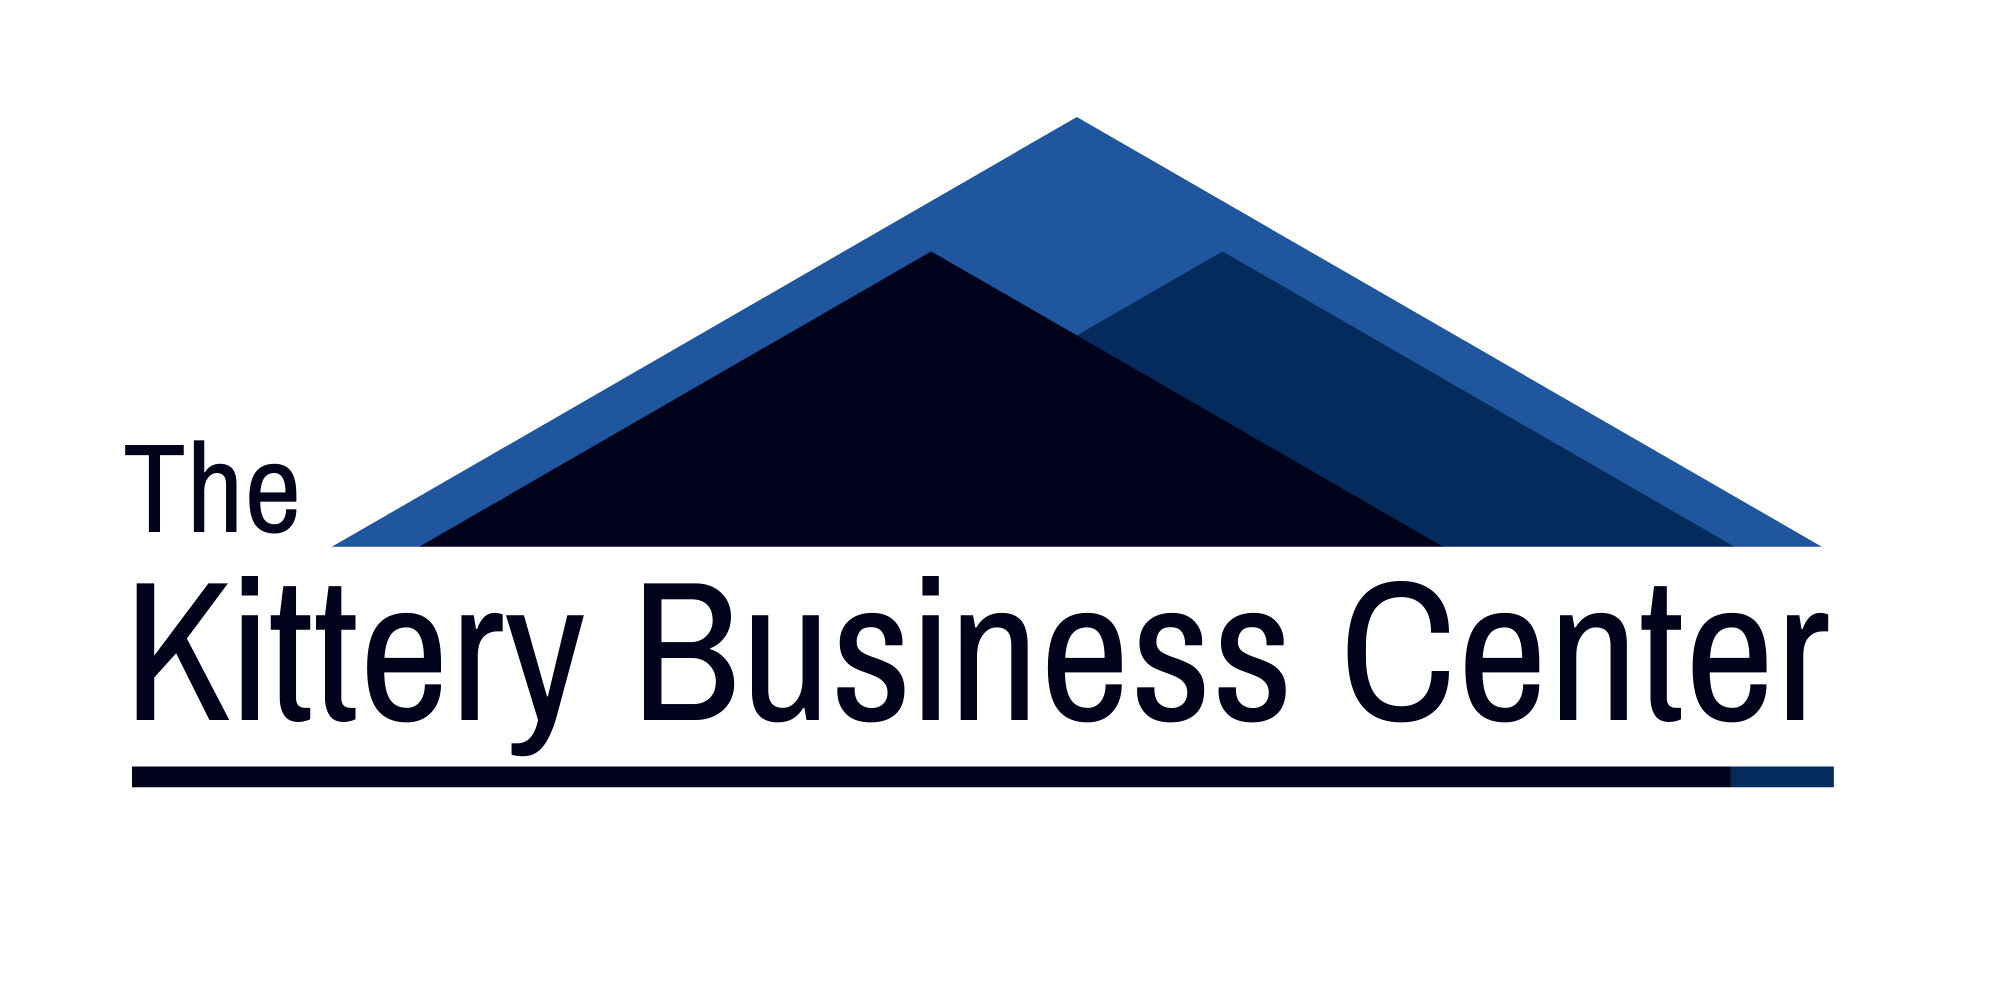 The Kittery Business Center